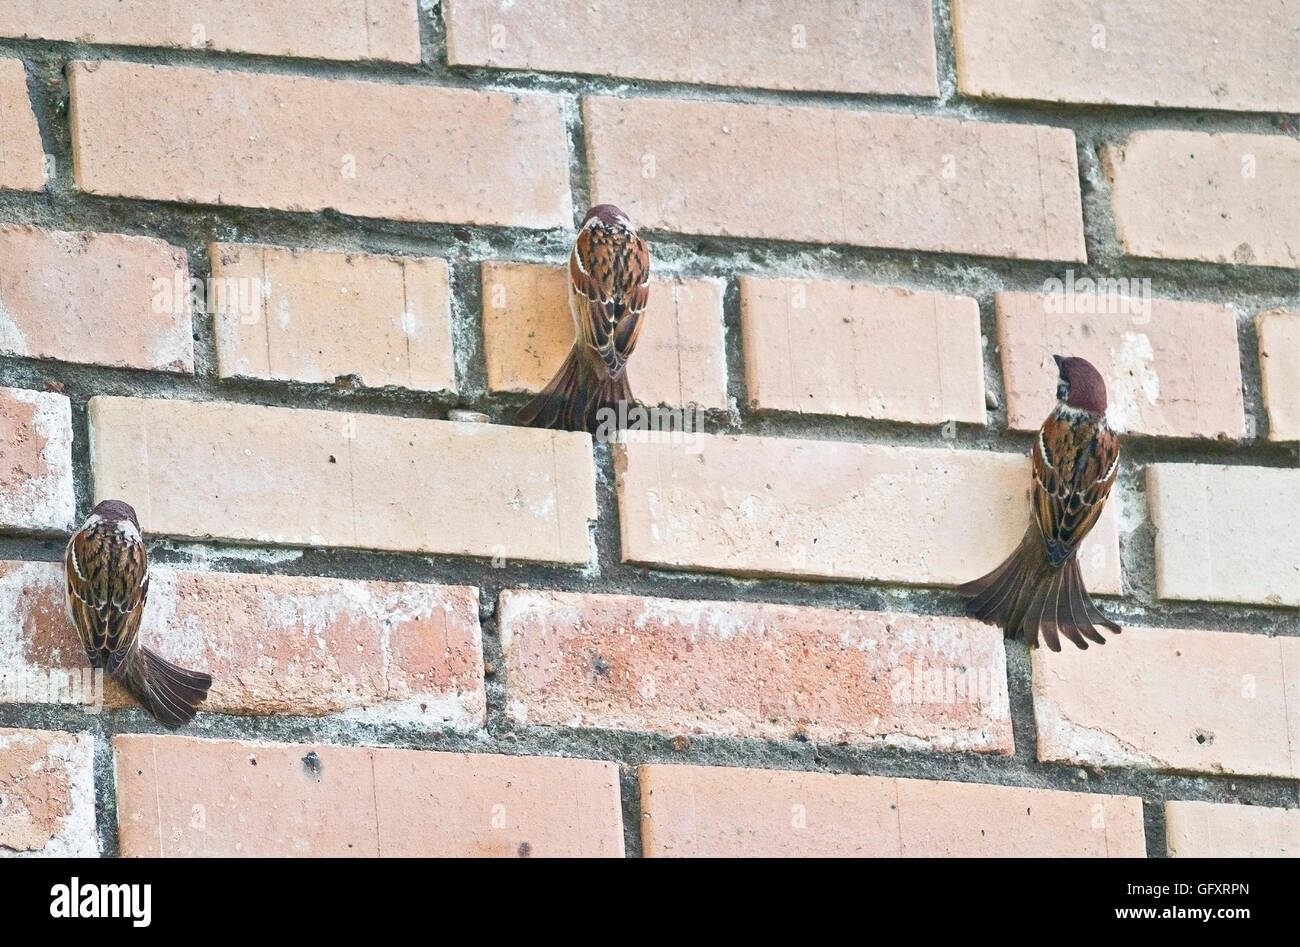 Funny sparrows have a mineral feeding on the wall stock photo funny sparrows have a mineral feeding on the wall thecheapjerseys Gallery